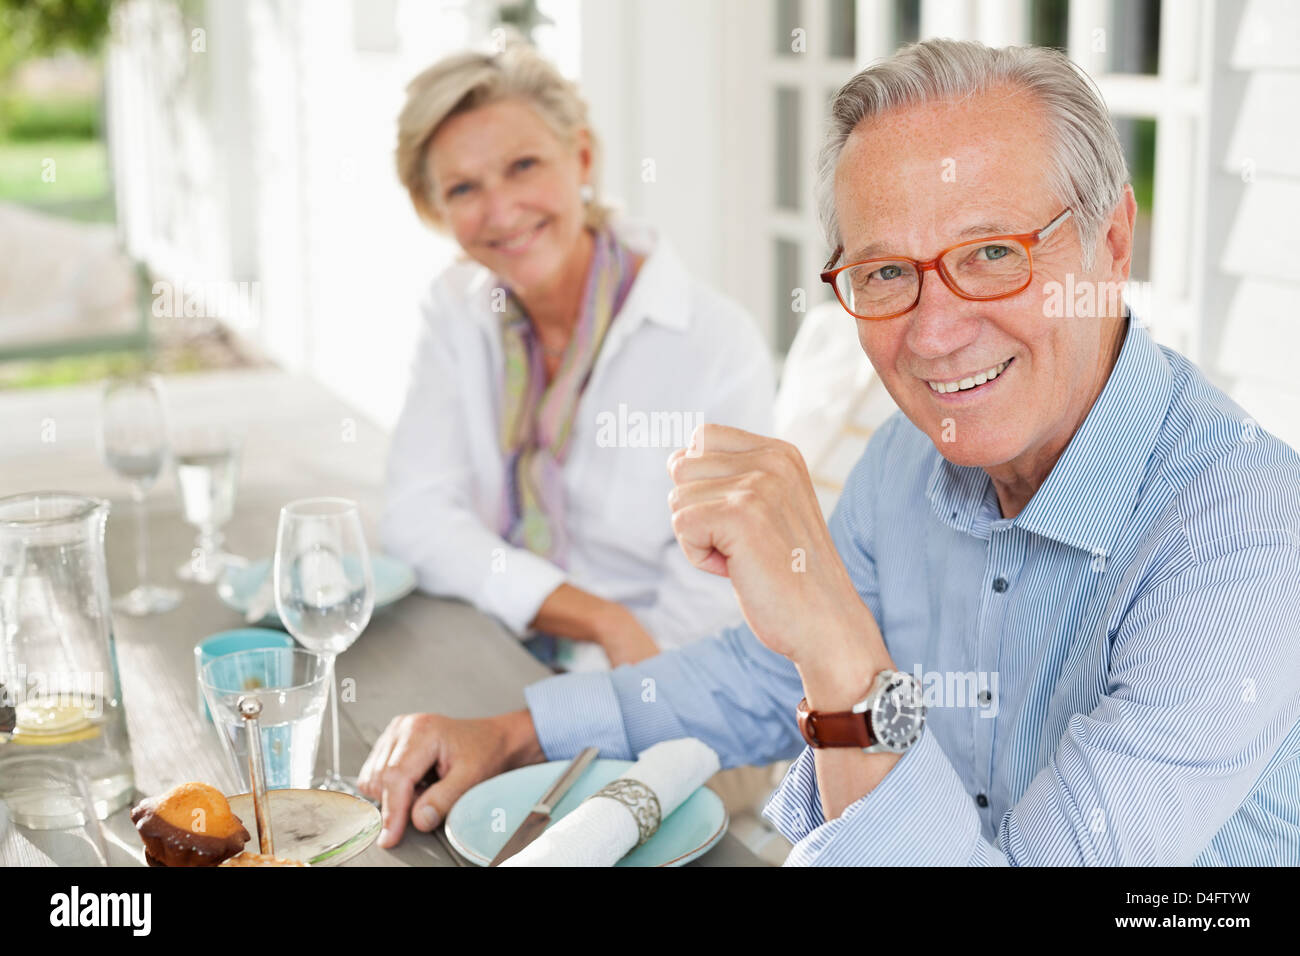 Couple smiling at table together - Stock Image